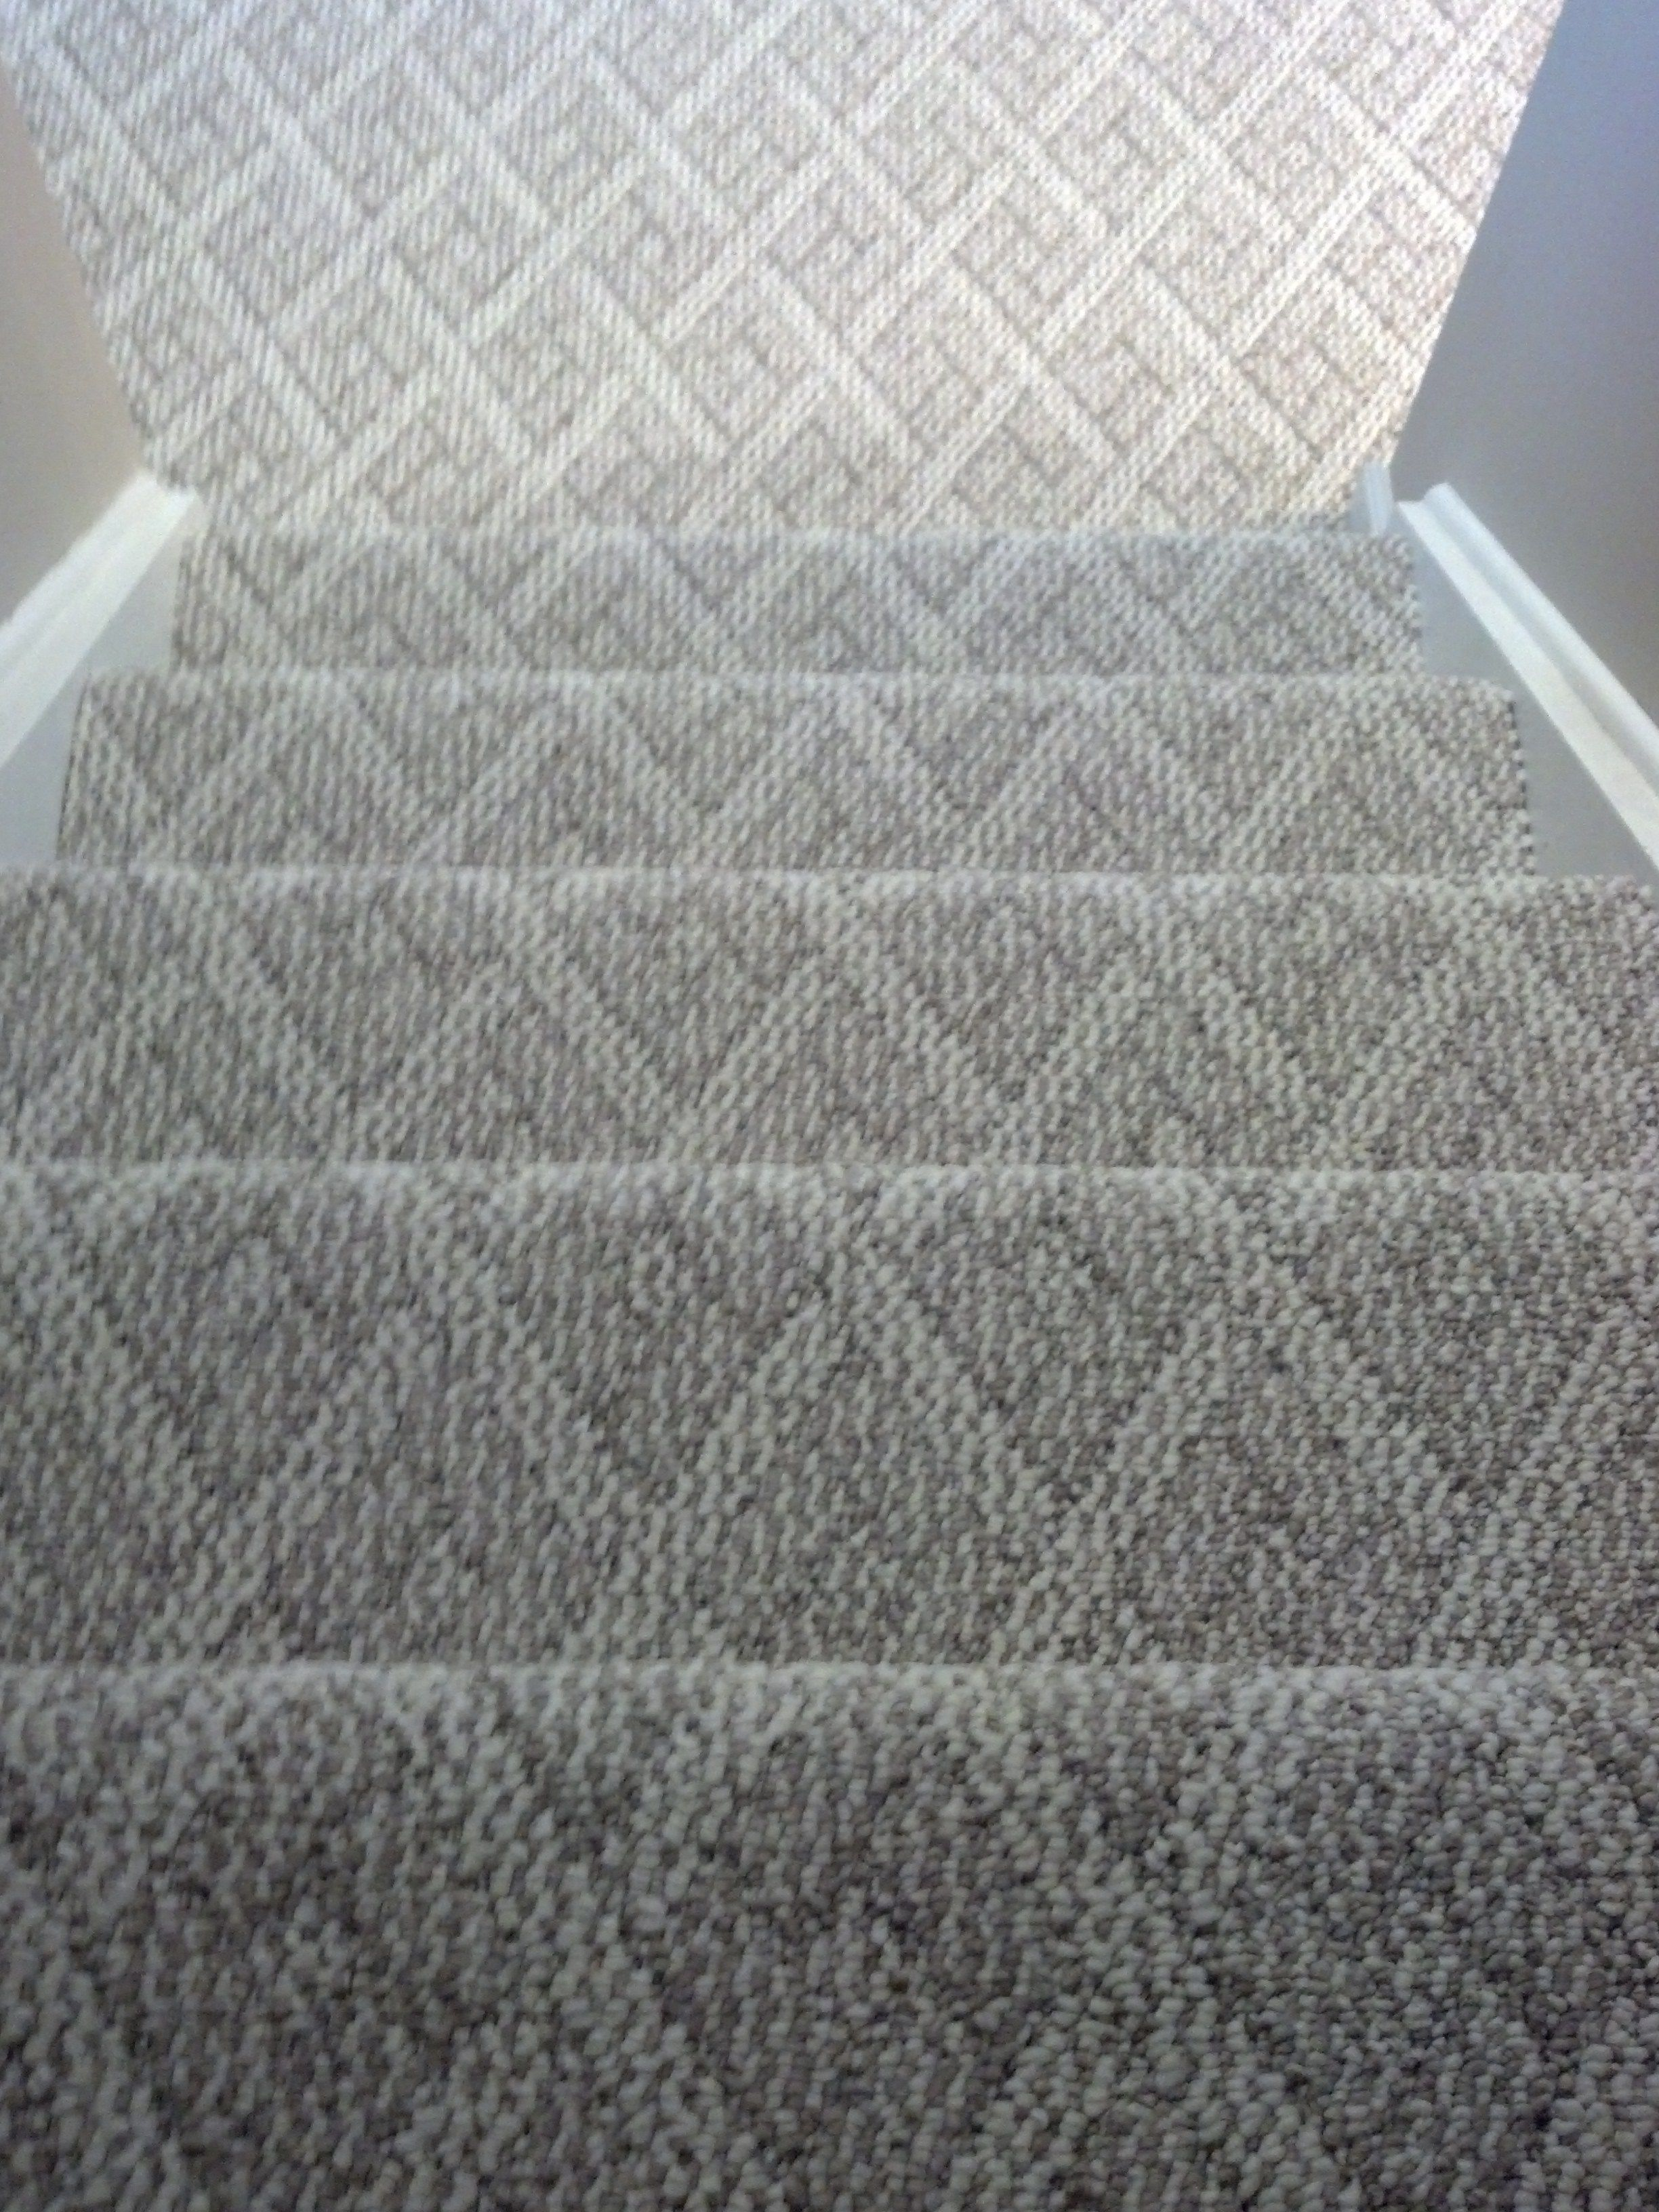 berber carpet cincinnati, ohio installed on steps and basement family room.  note.....notice MGAVTQF